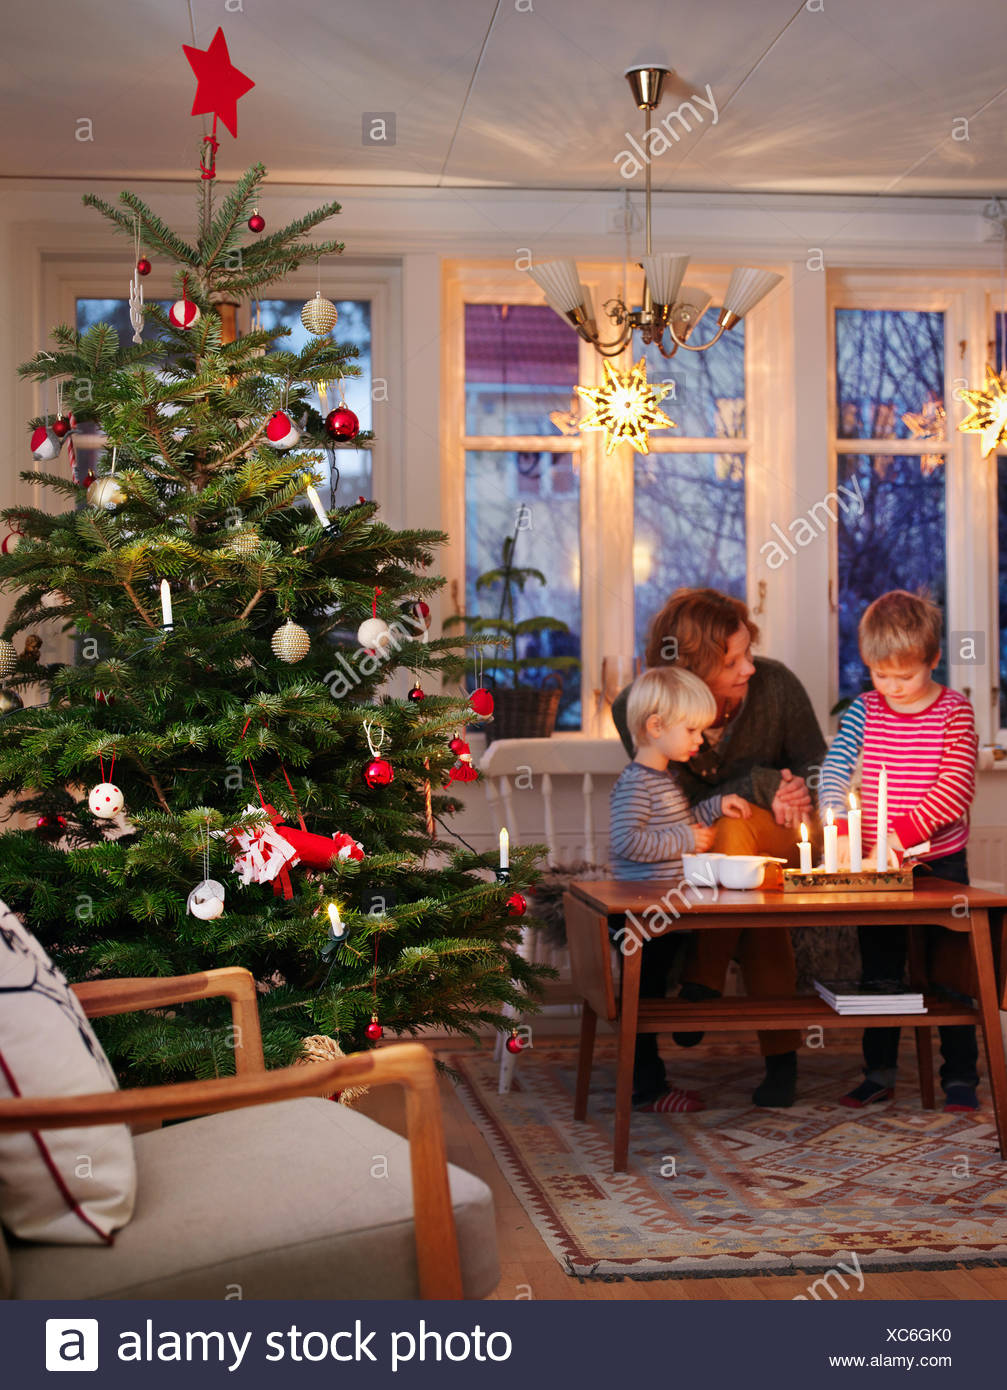 Woman and boys at table by christmas tree - Stock Image